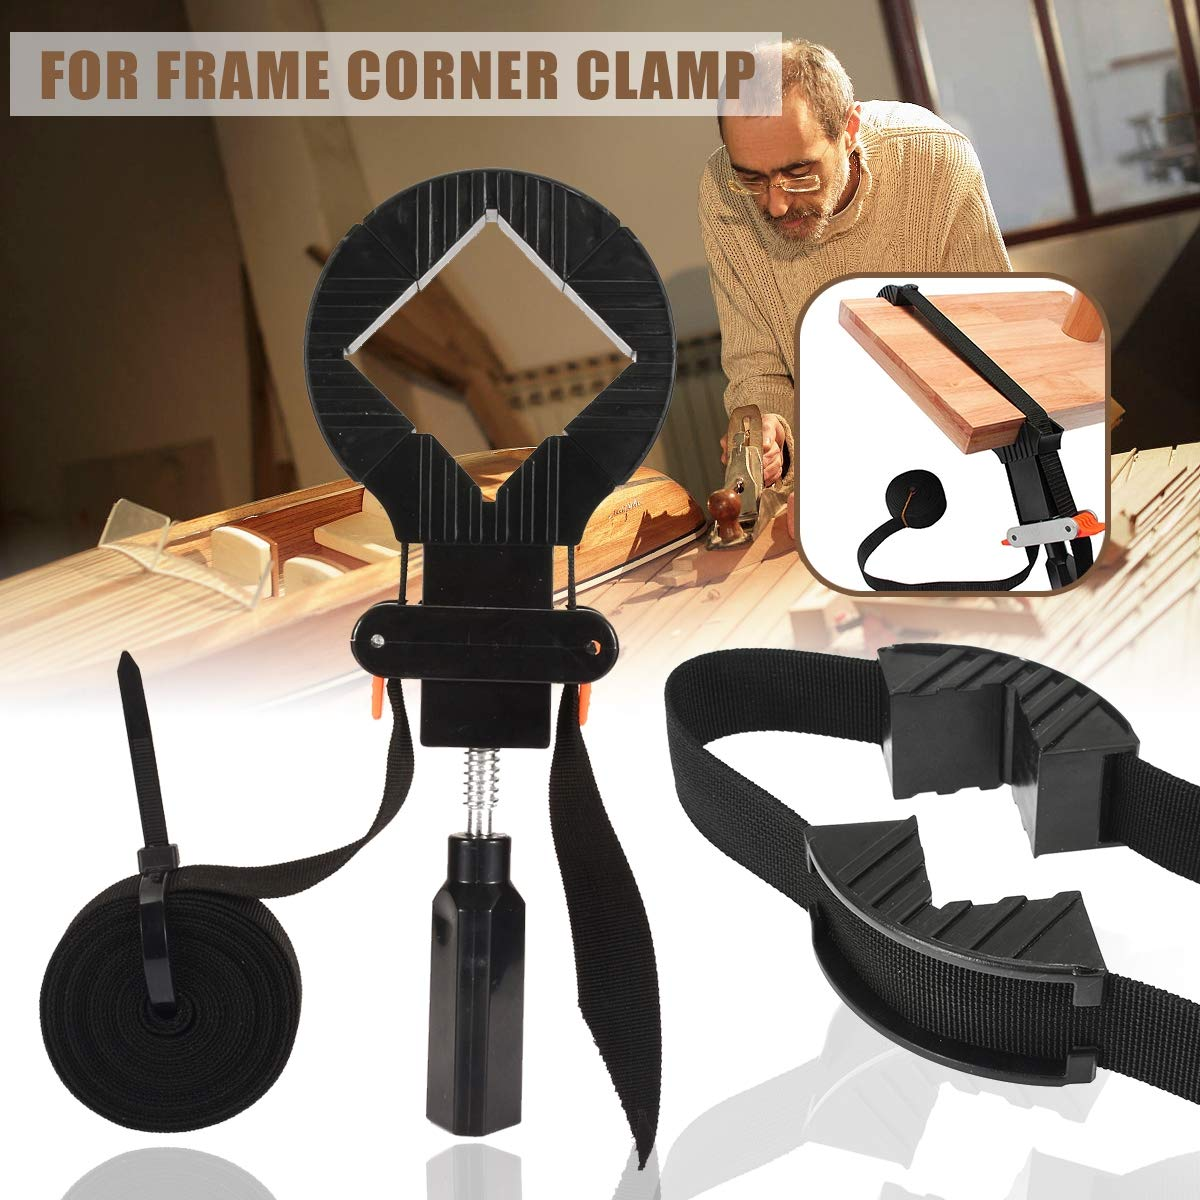 XINTONGRULE Multifunctional Belt Clamp Woodworking Quick Adjustable Band clamp Polygon Clip Right Angle Corner Strap Photo Frame Clips by XINTONGRULE